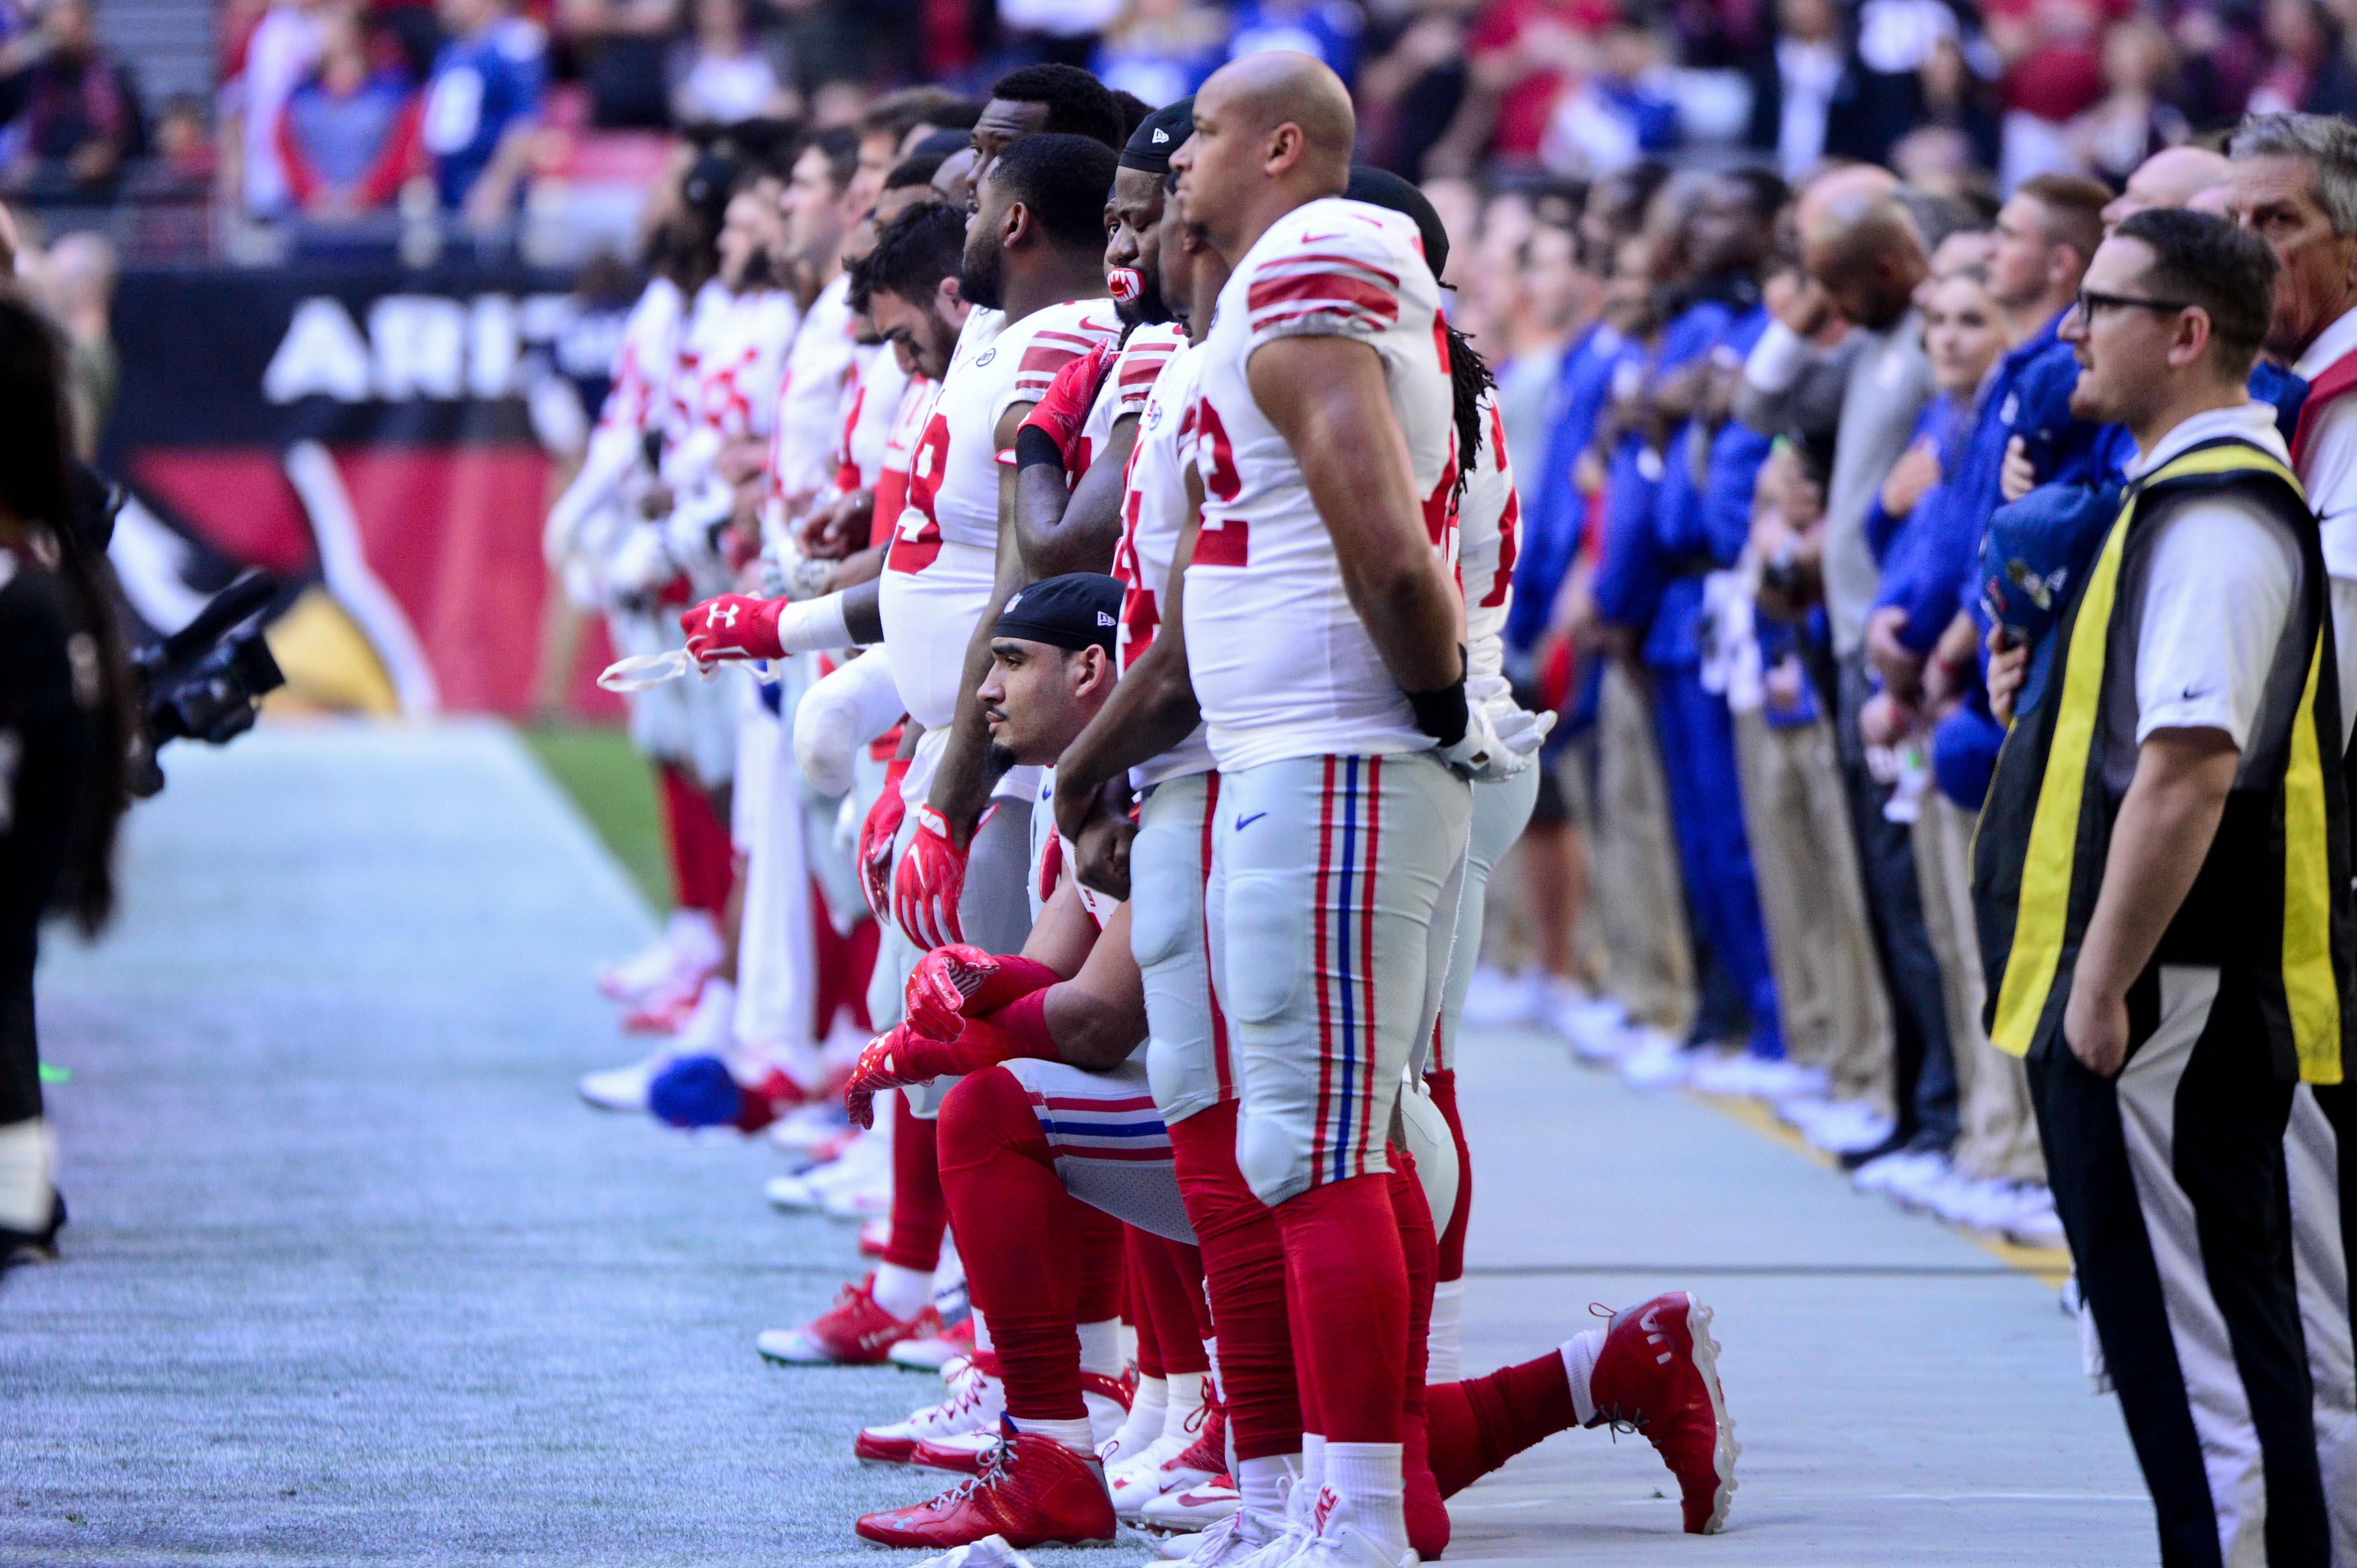 New York Giants players will not be punished for kneeling during national anthem